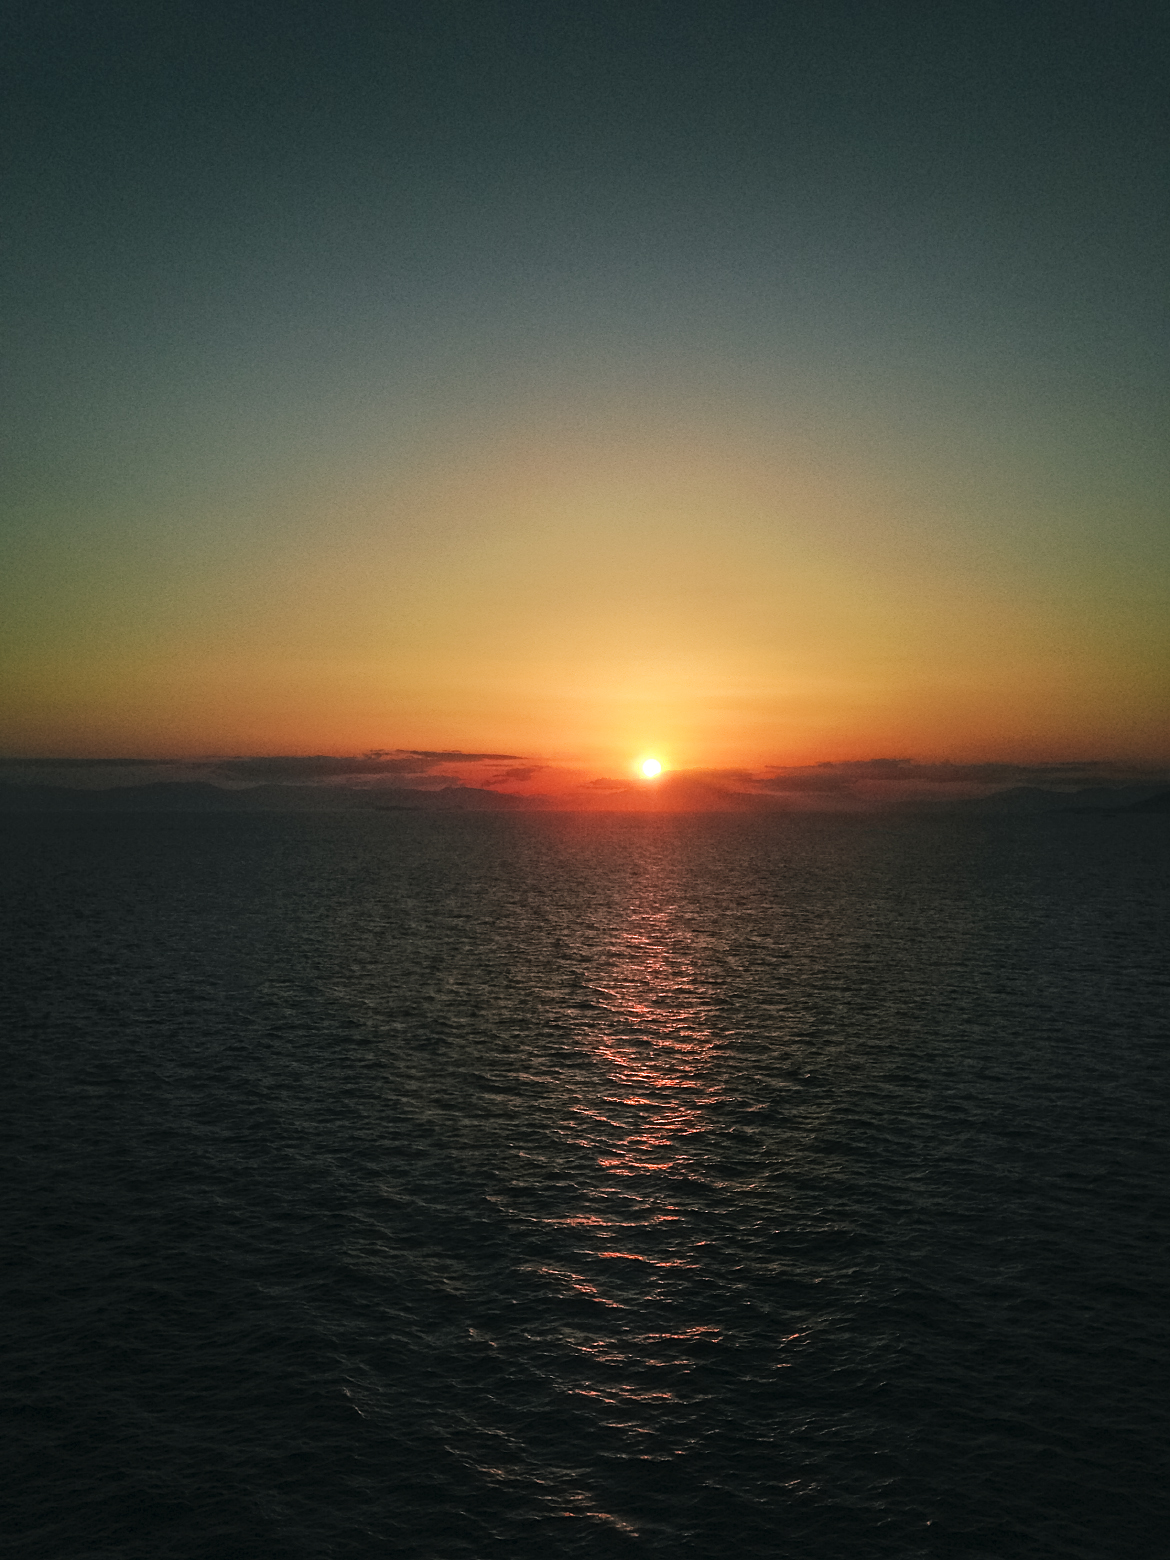 Mediterranean sunsets look better out at sea.